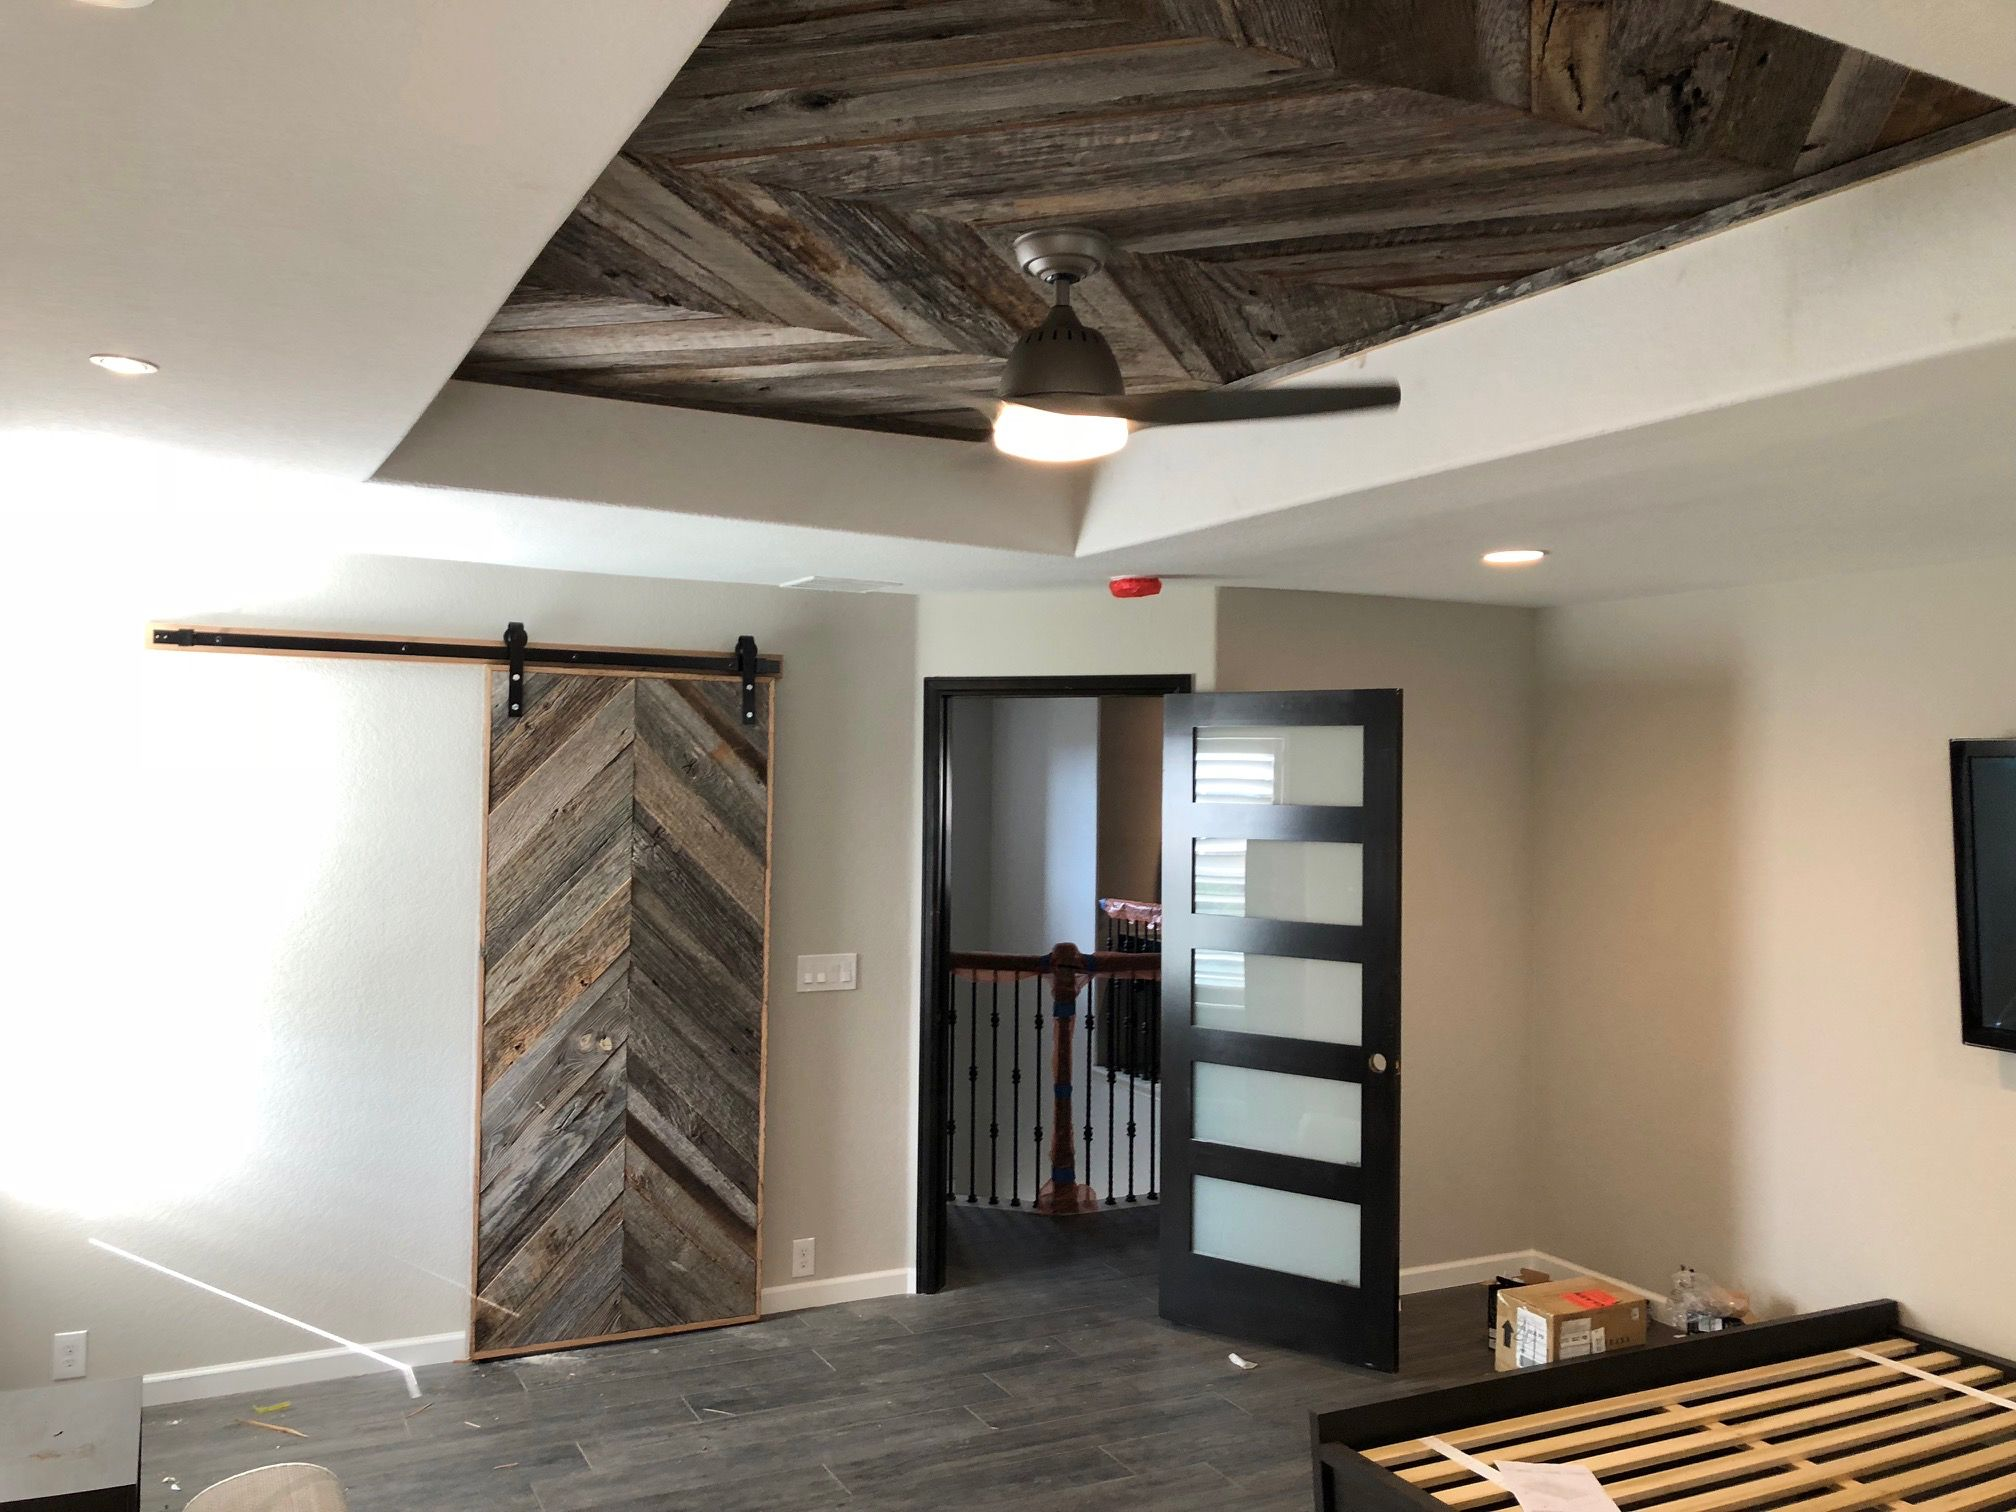 Thank You To Finished Basement Company For Sharing A Photo Of A Remodel They Are Working On For A Client Using Front Reclaimed Wood Hand Hewn Beams Barn Siding